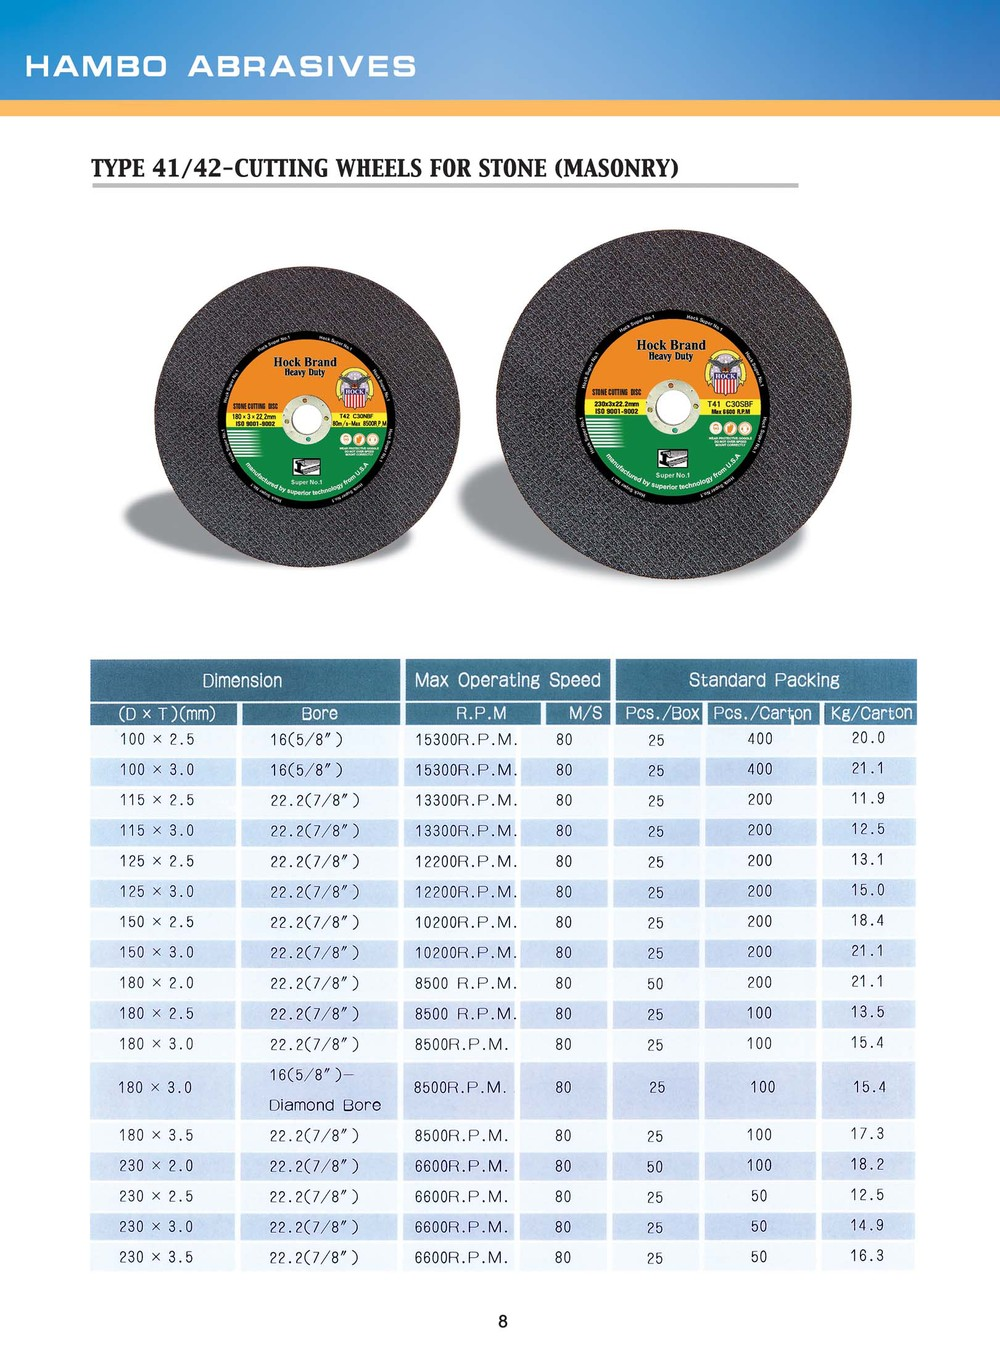 cut wheels for Russia market